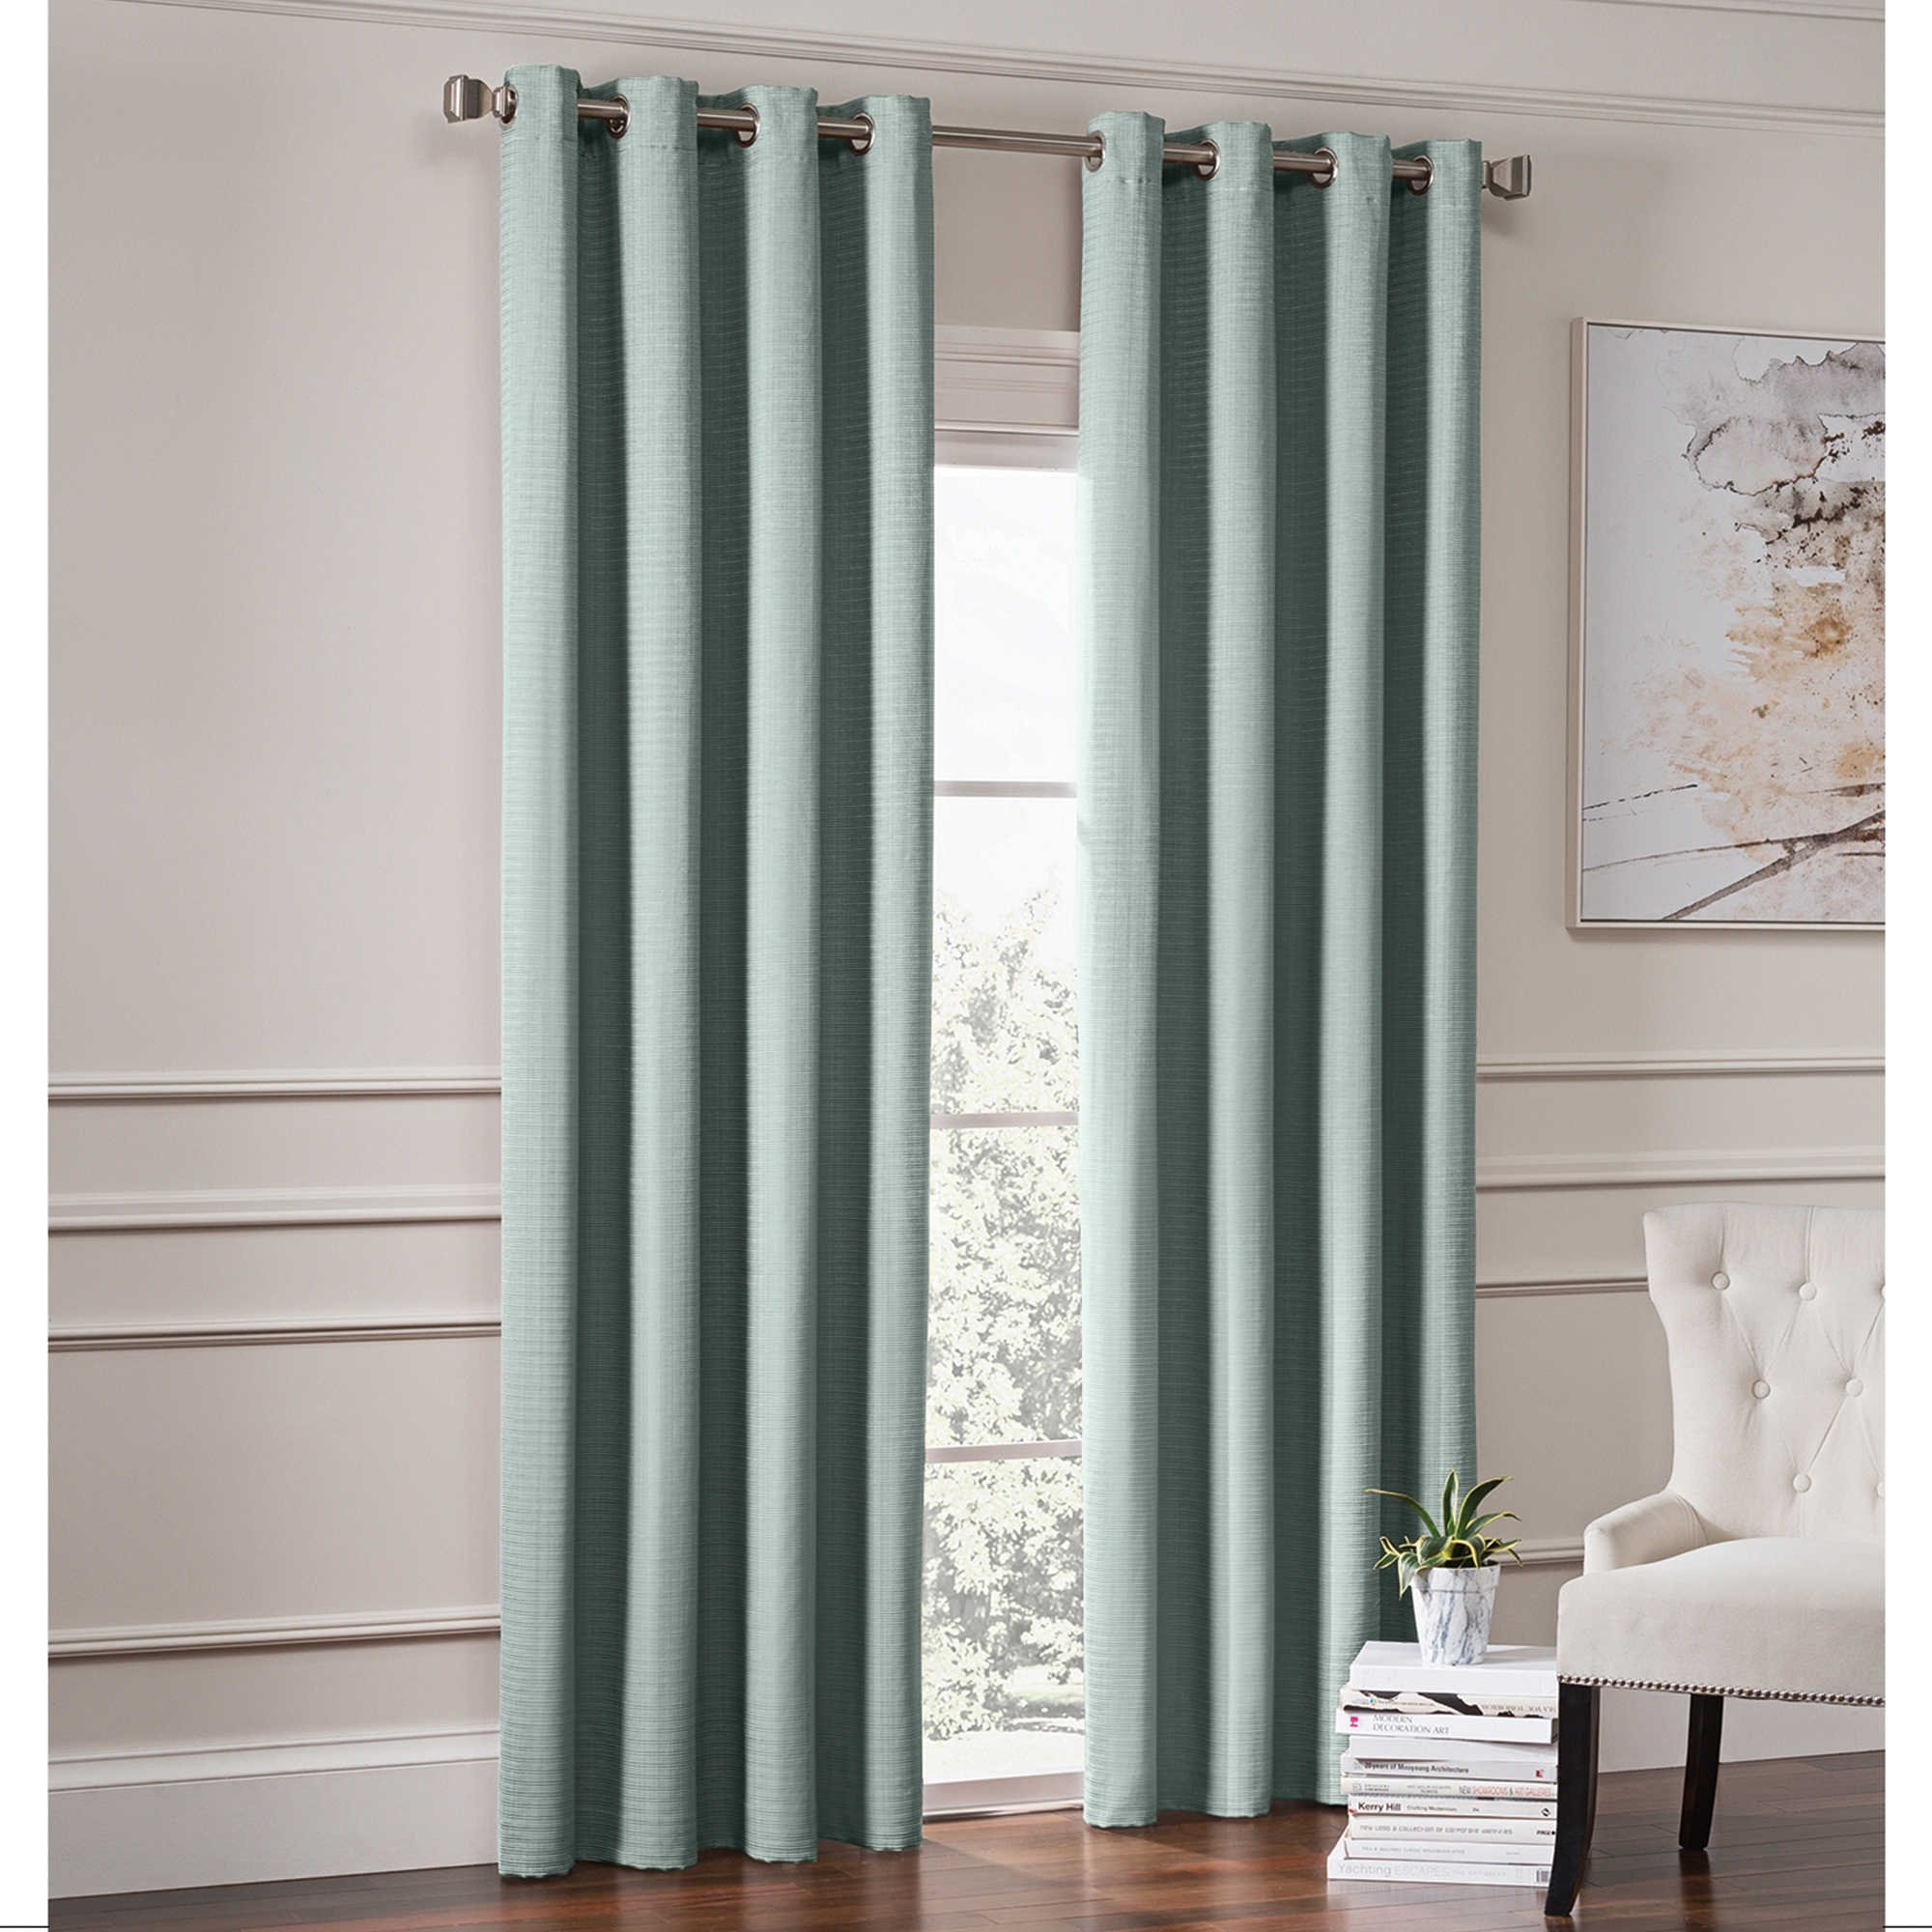 Richloom Home Fashions Garland 84'' L, 1 Lined Grommet Top Room Darkening Curtain Panel - Spa